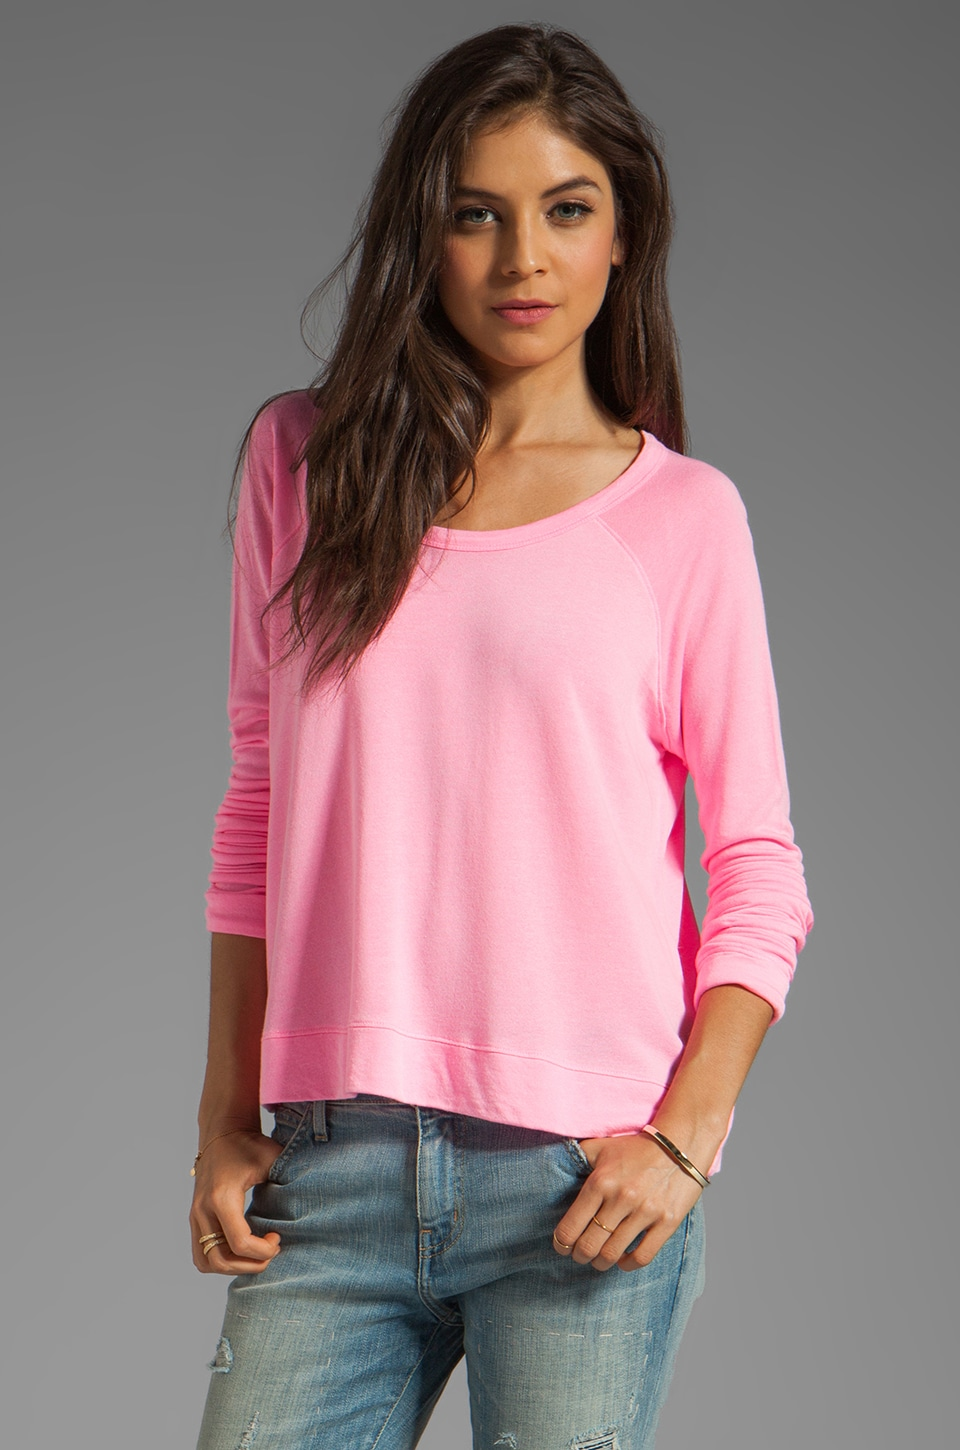 SUNDRY Cropped Pullover in Pop Pink